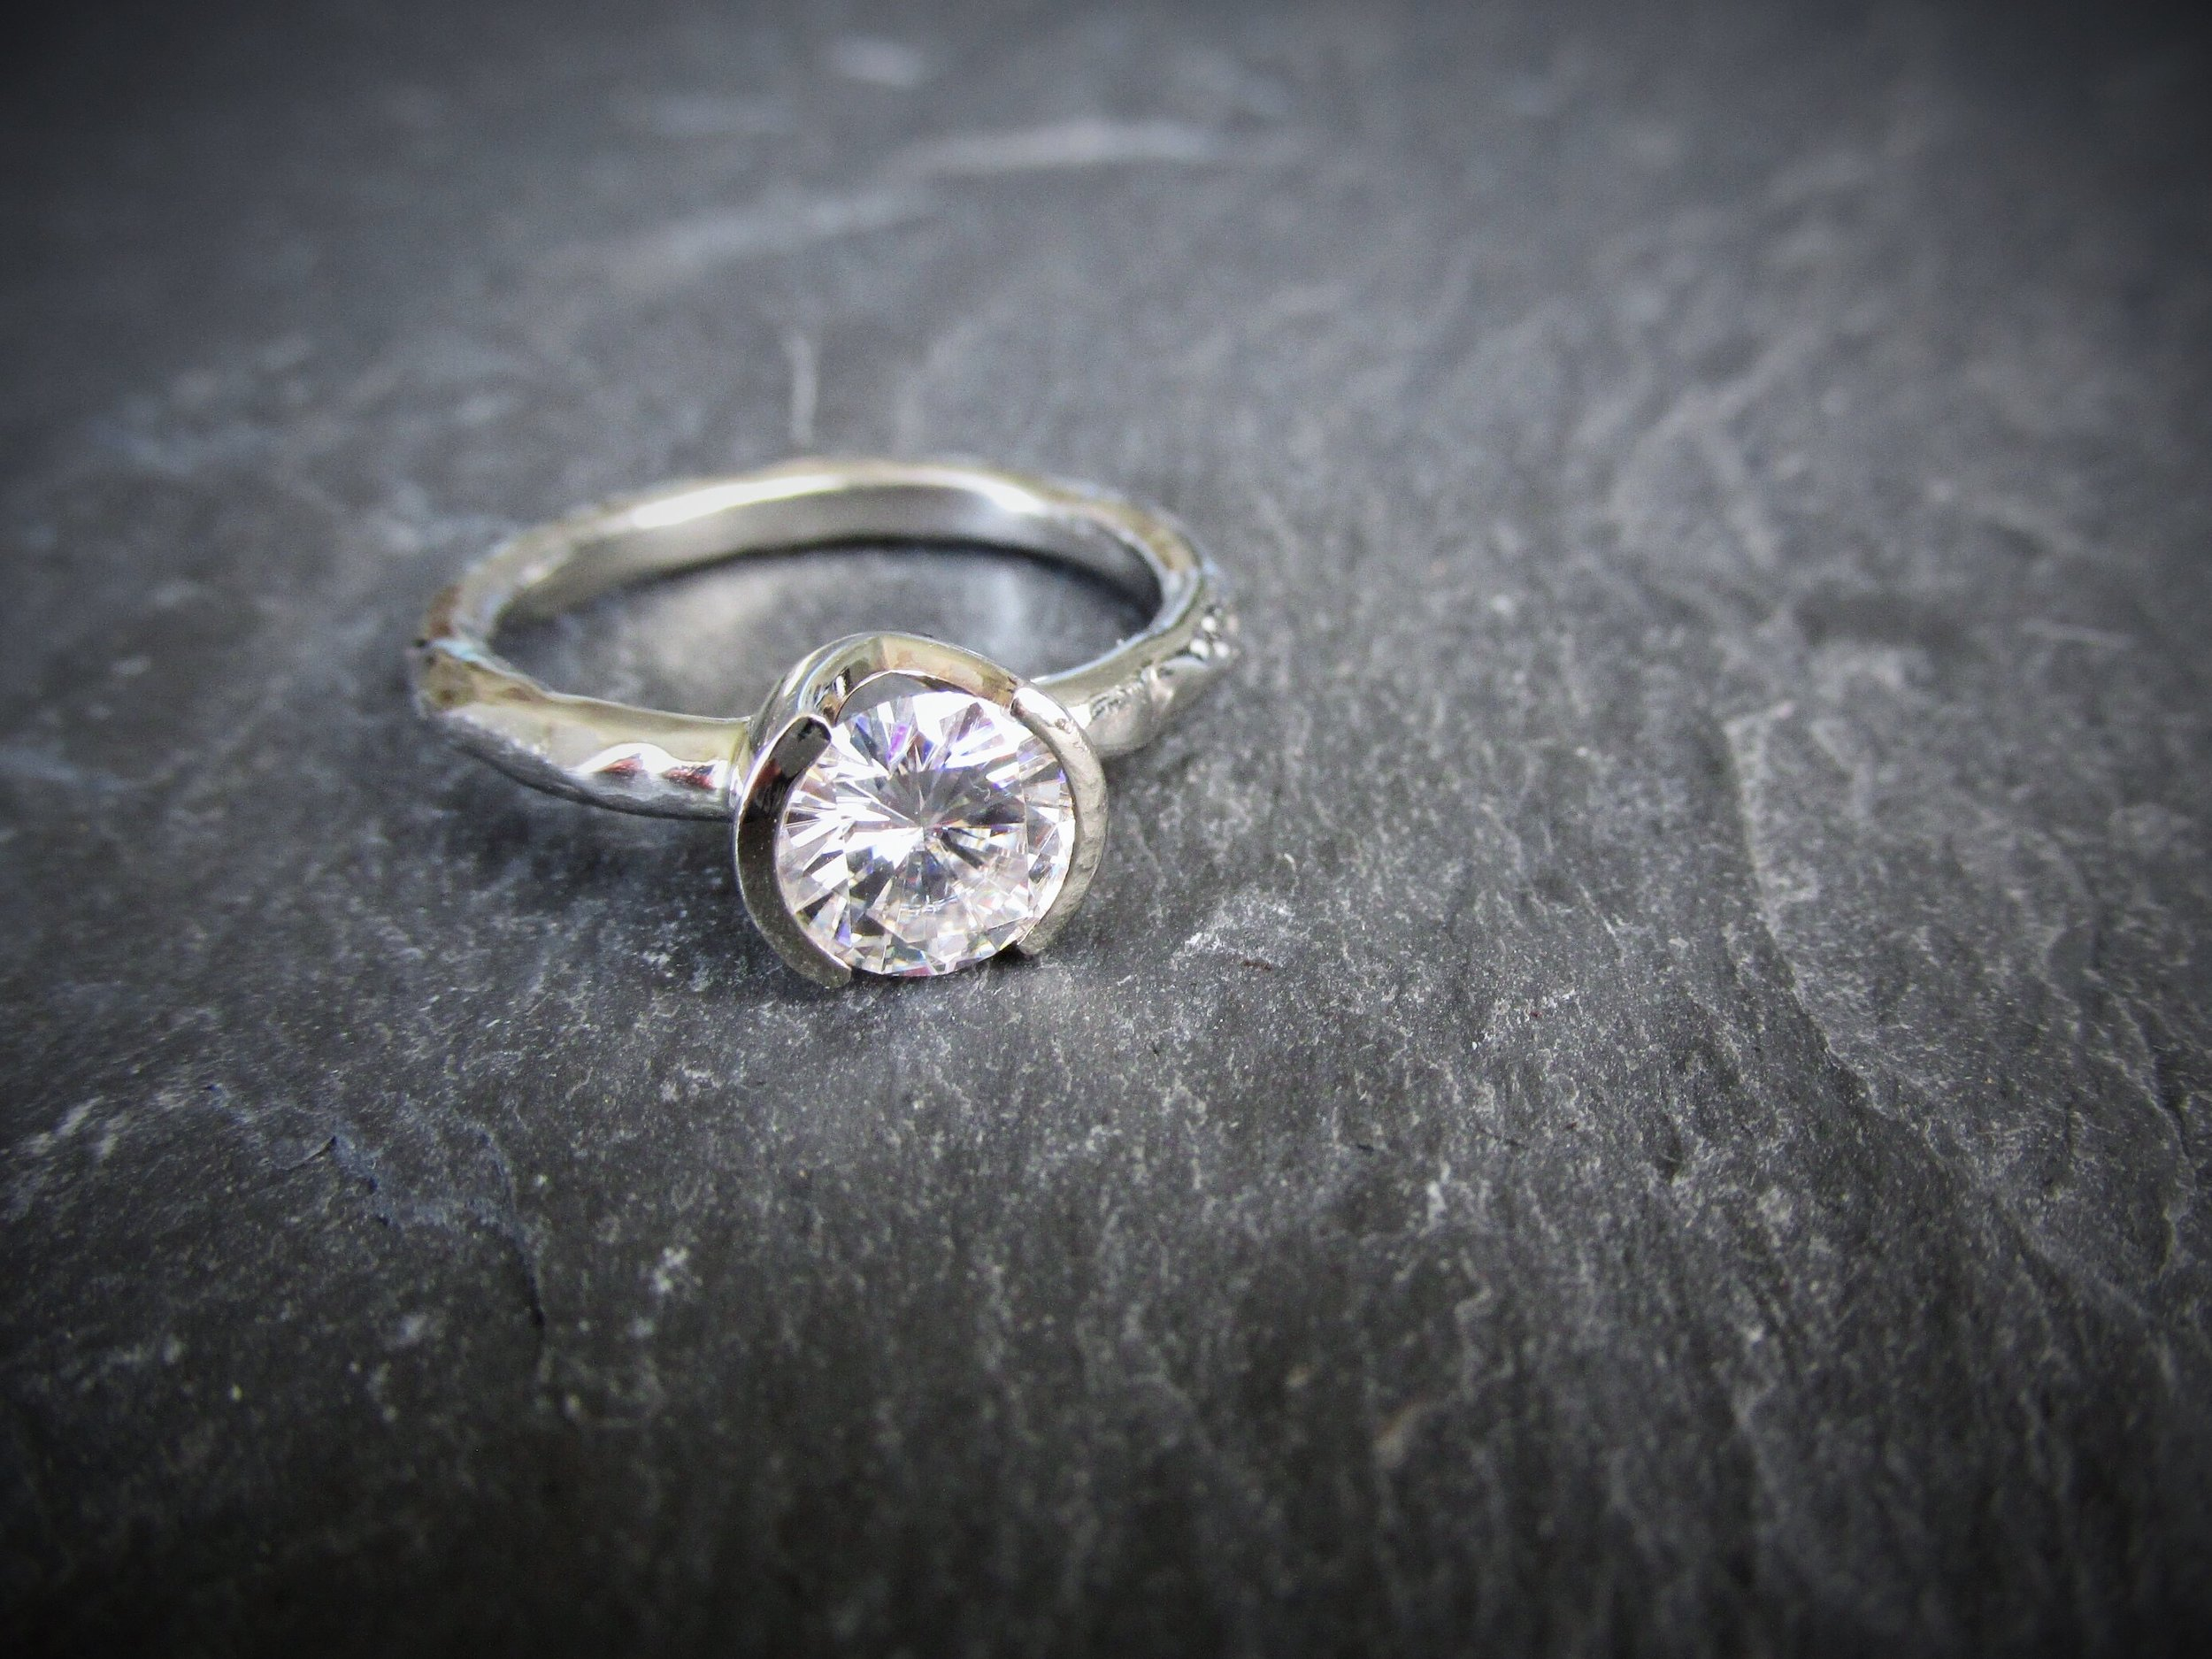 Rugged Solitaire Engagement Ring. Starting at $1349